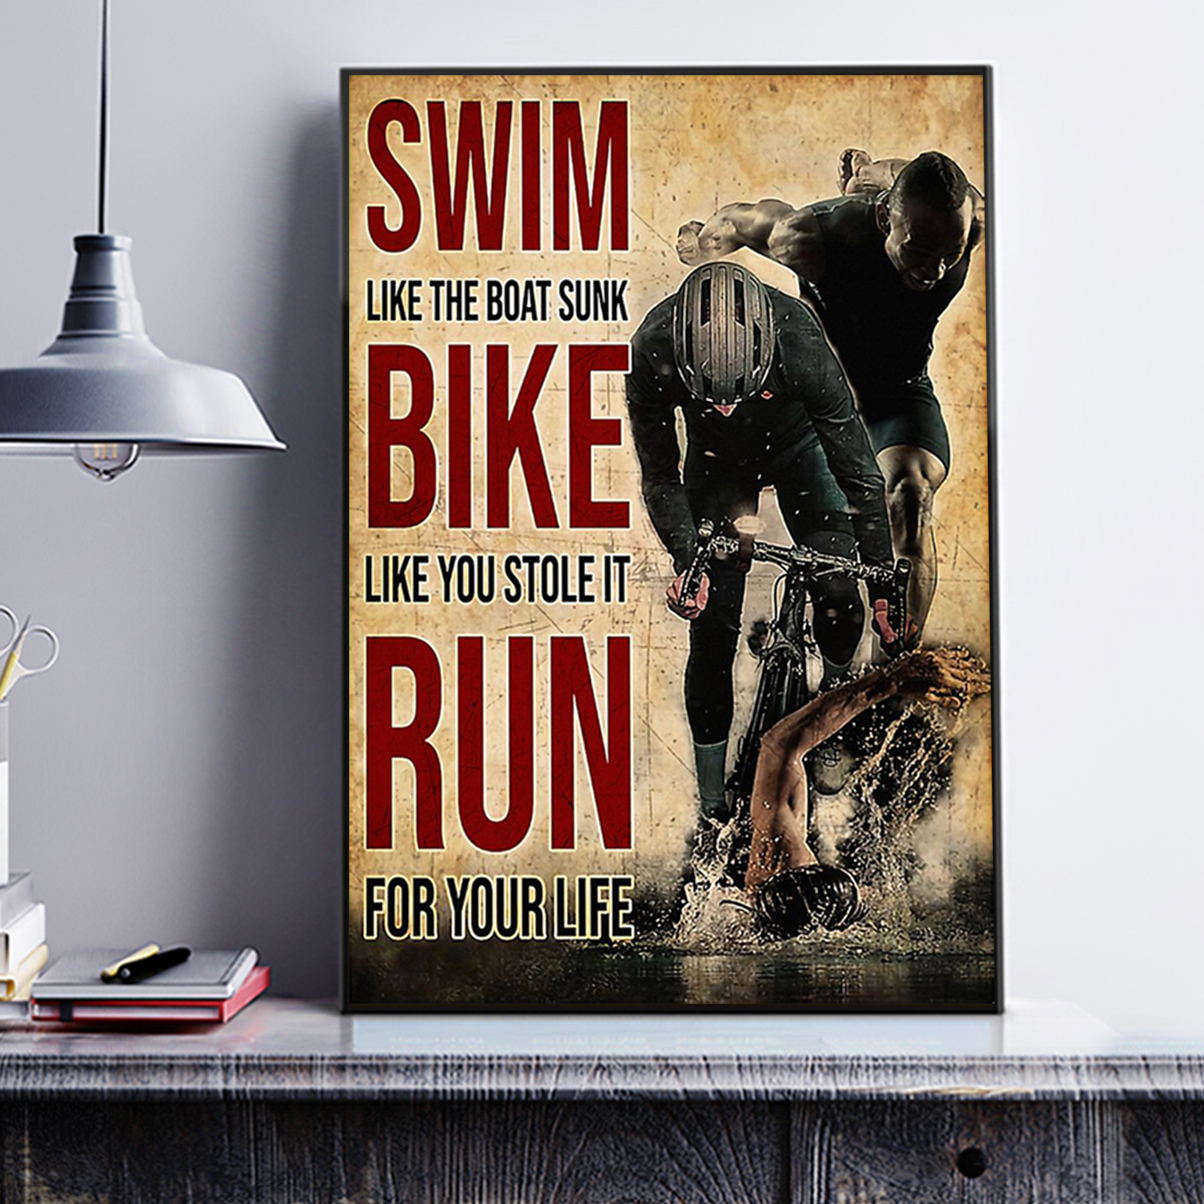 Swim like the boat sunk bike like you stole it run for your life poster A2